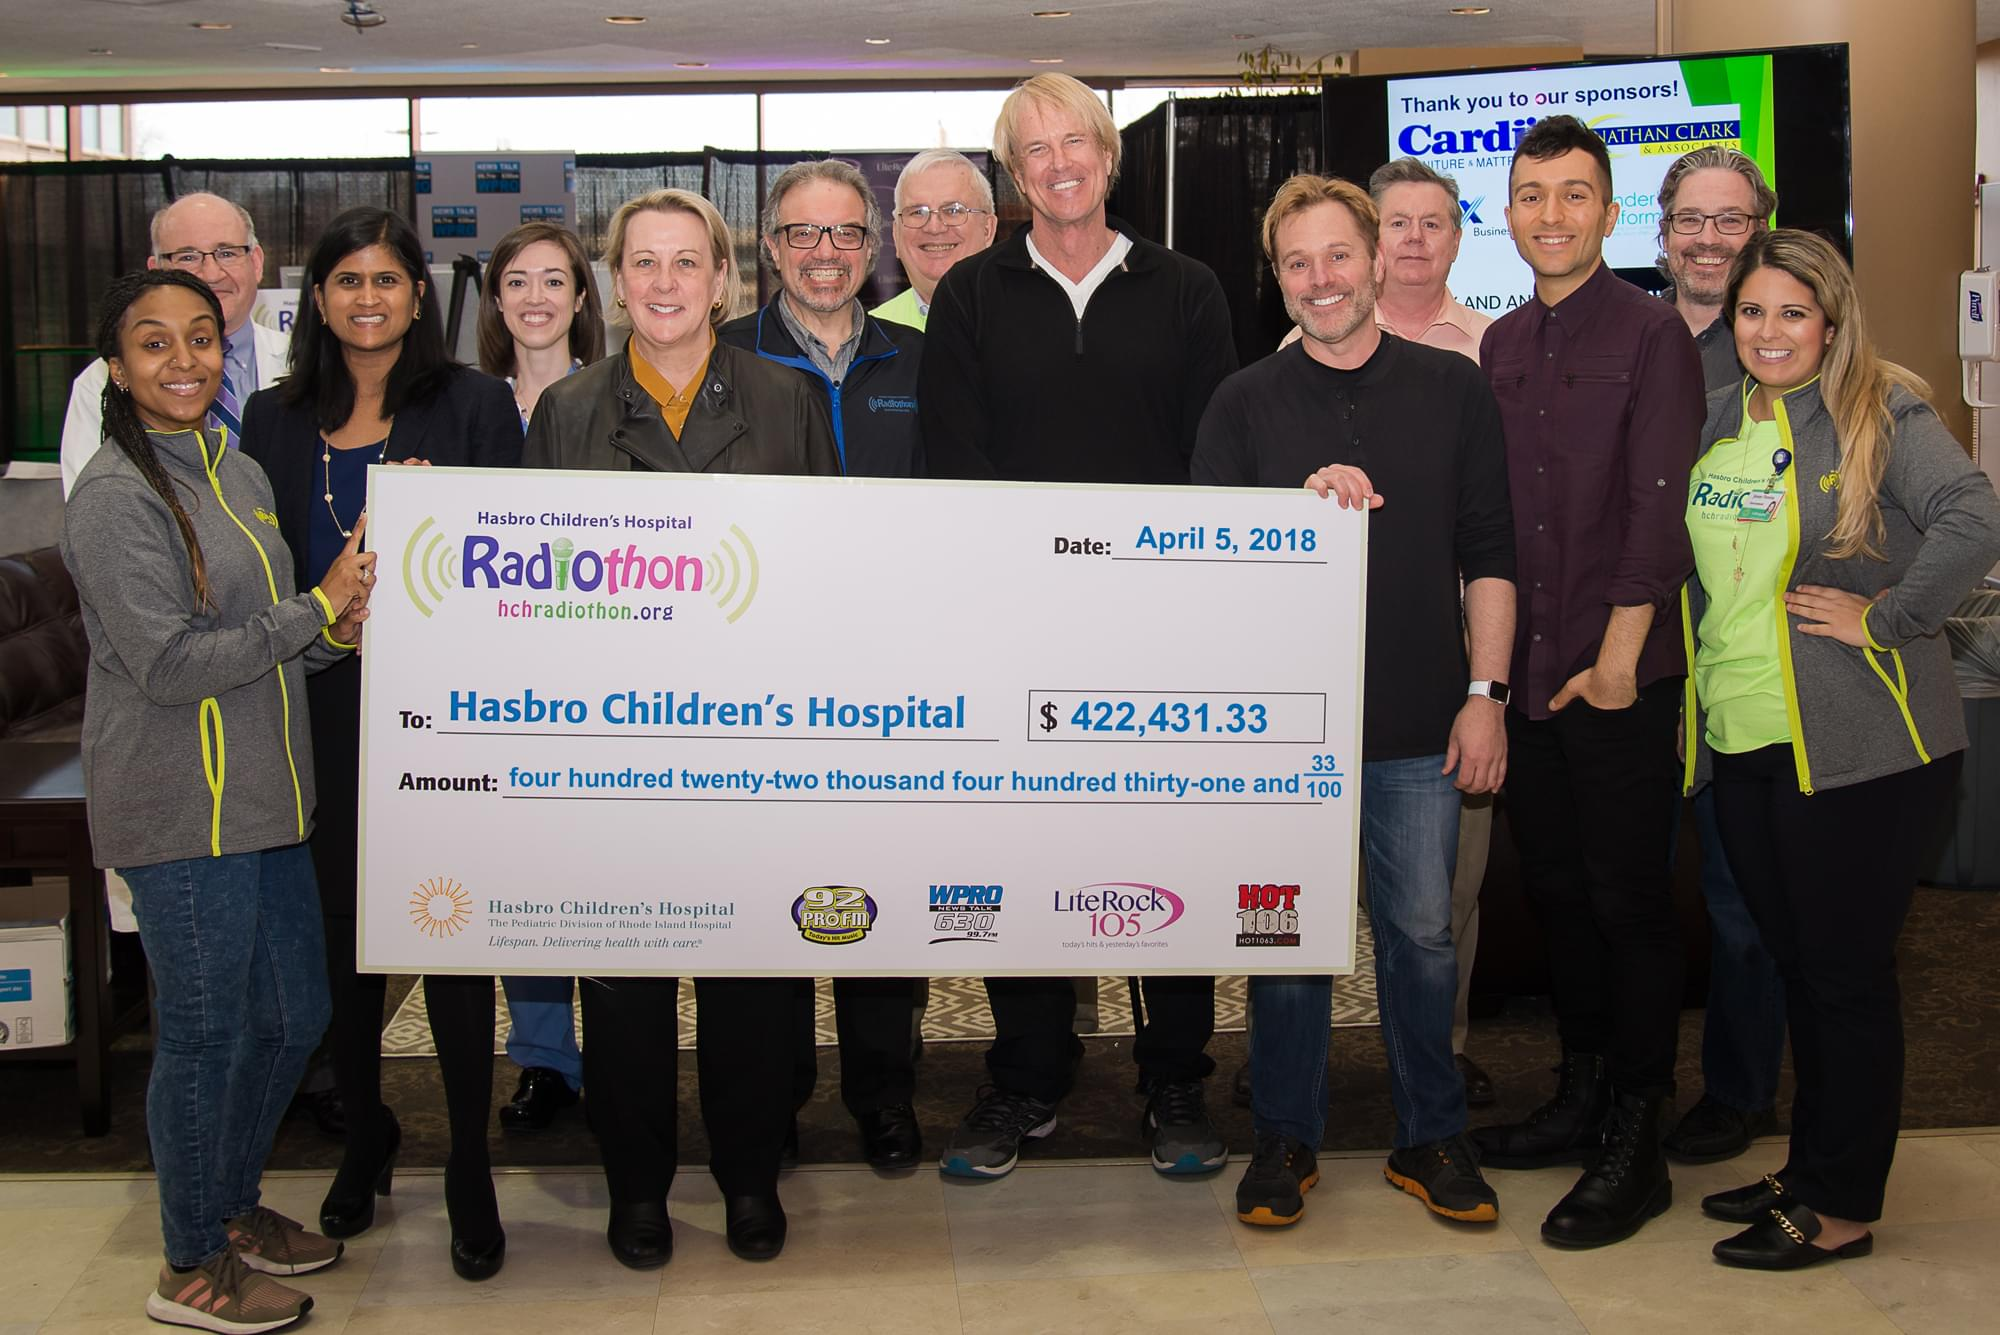 Radiothon 2018 check with amount